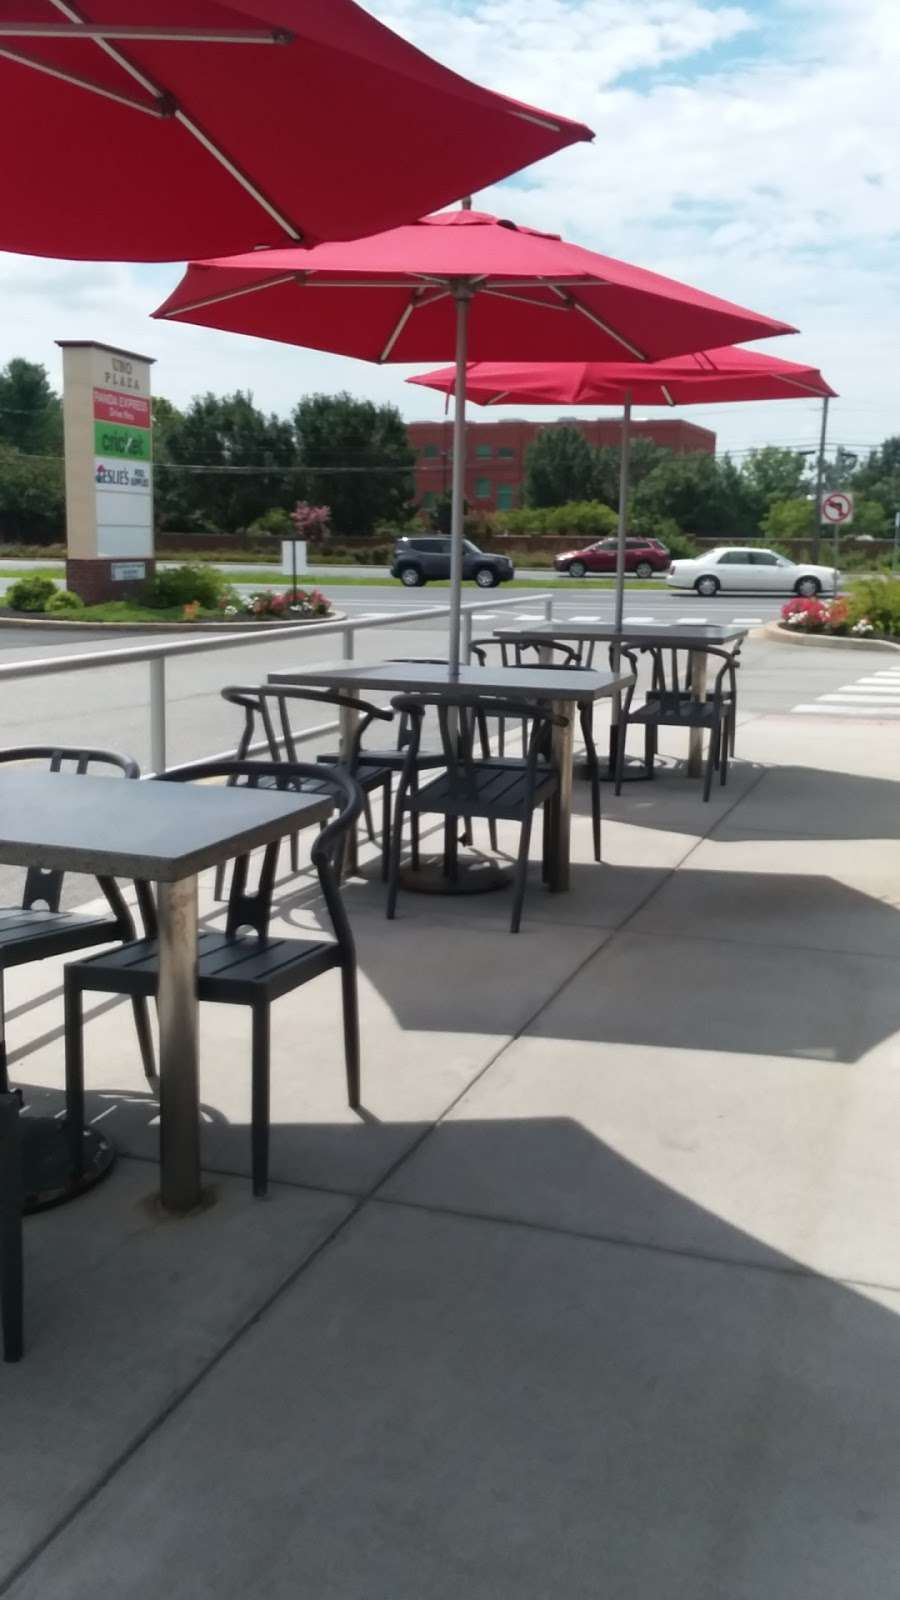 Panda Express - restaurant  | Photo 7 of 10 | Address: 1225 N Dupont Hwy, Dover, DE 19901, USA | Phone: (302) 734-4798